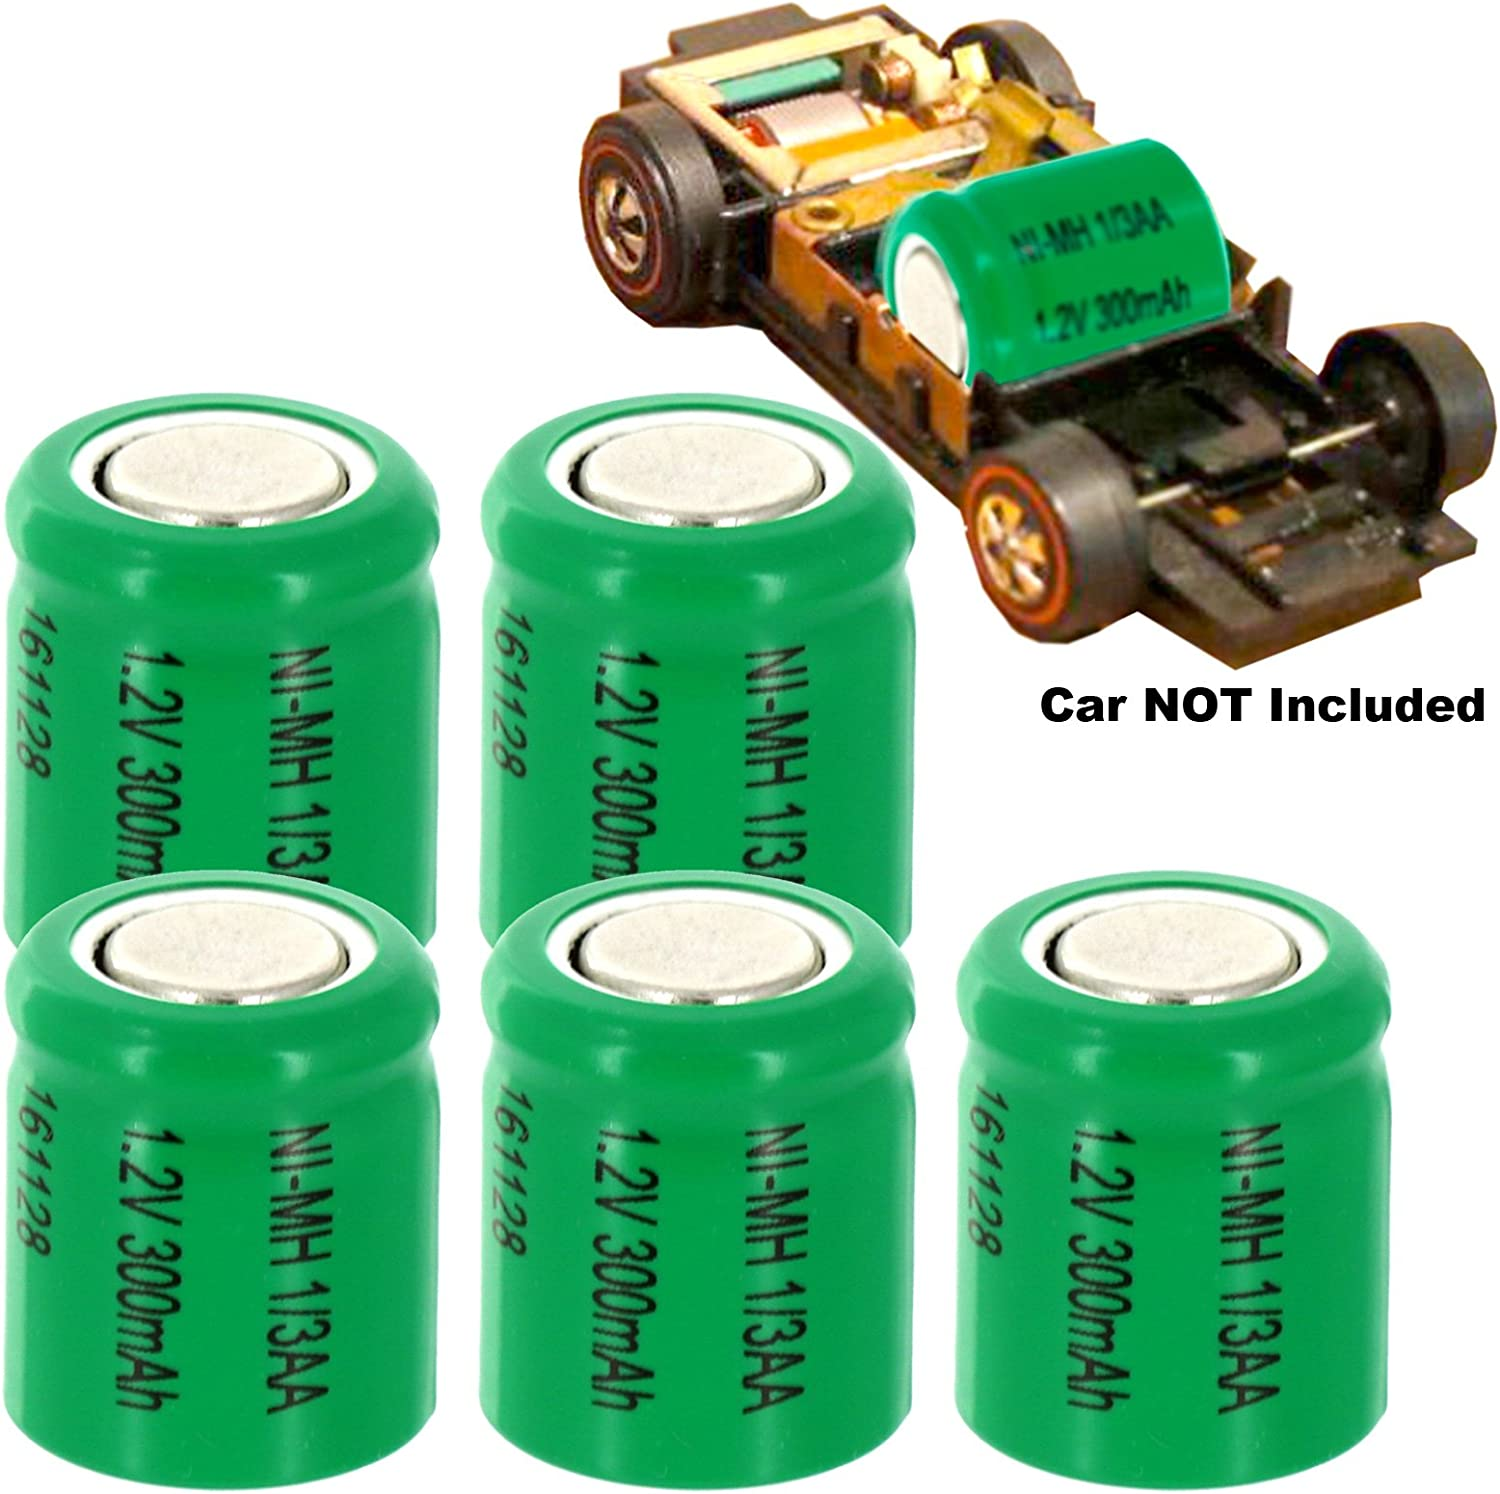 MATCHBOX EARTH SHAKERS AND CHOPCYCLES HOTLINE TRAINS MANTIS 5pc Sizzler Short Chasis 1.2V 1//3AA NiMH 300mAh Flat Top Rechargeable Battery For MUSTANG 302 BOSS SIZZLERS AND SIZZLERS II